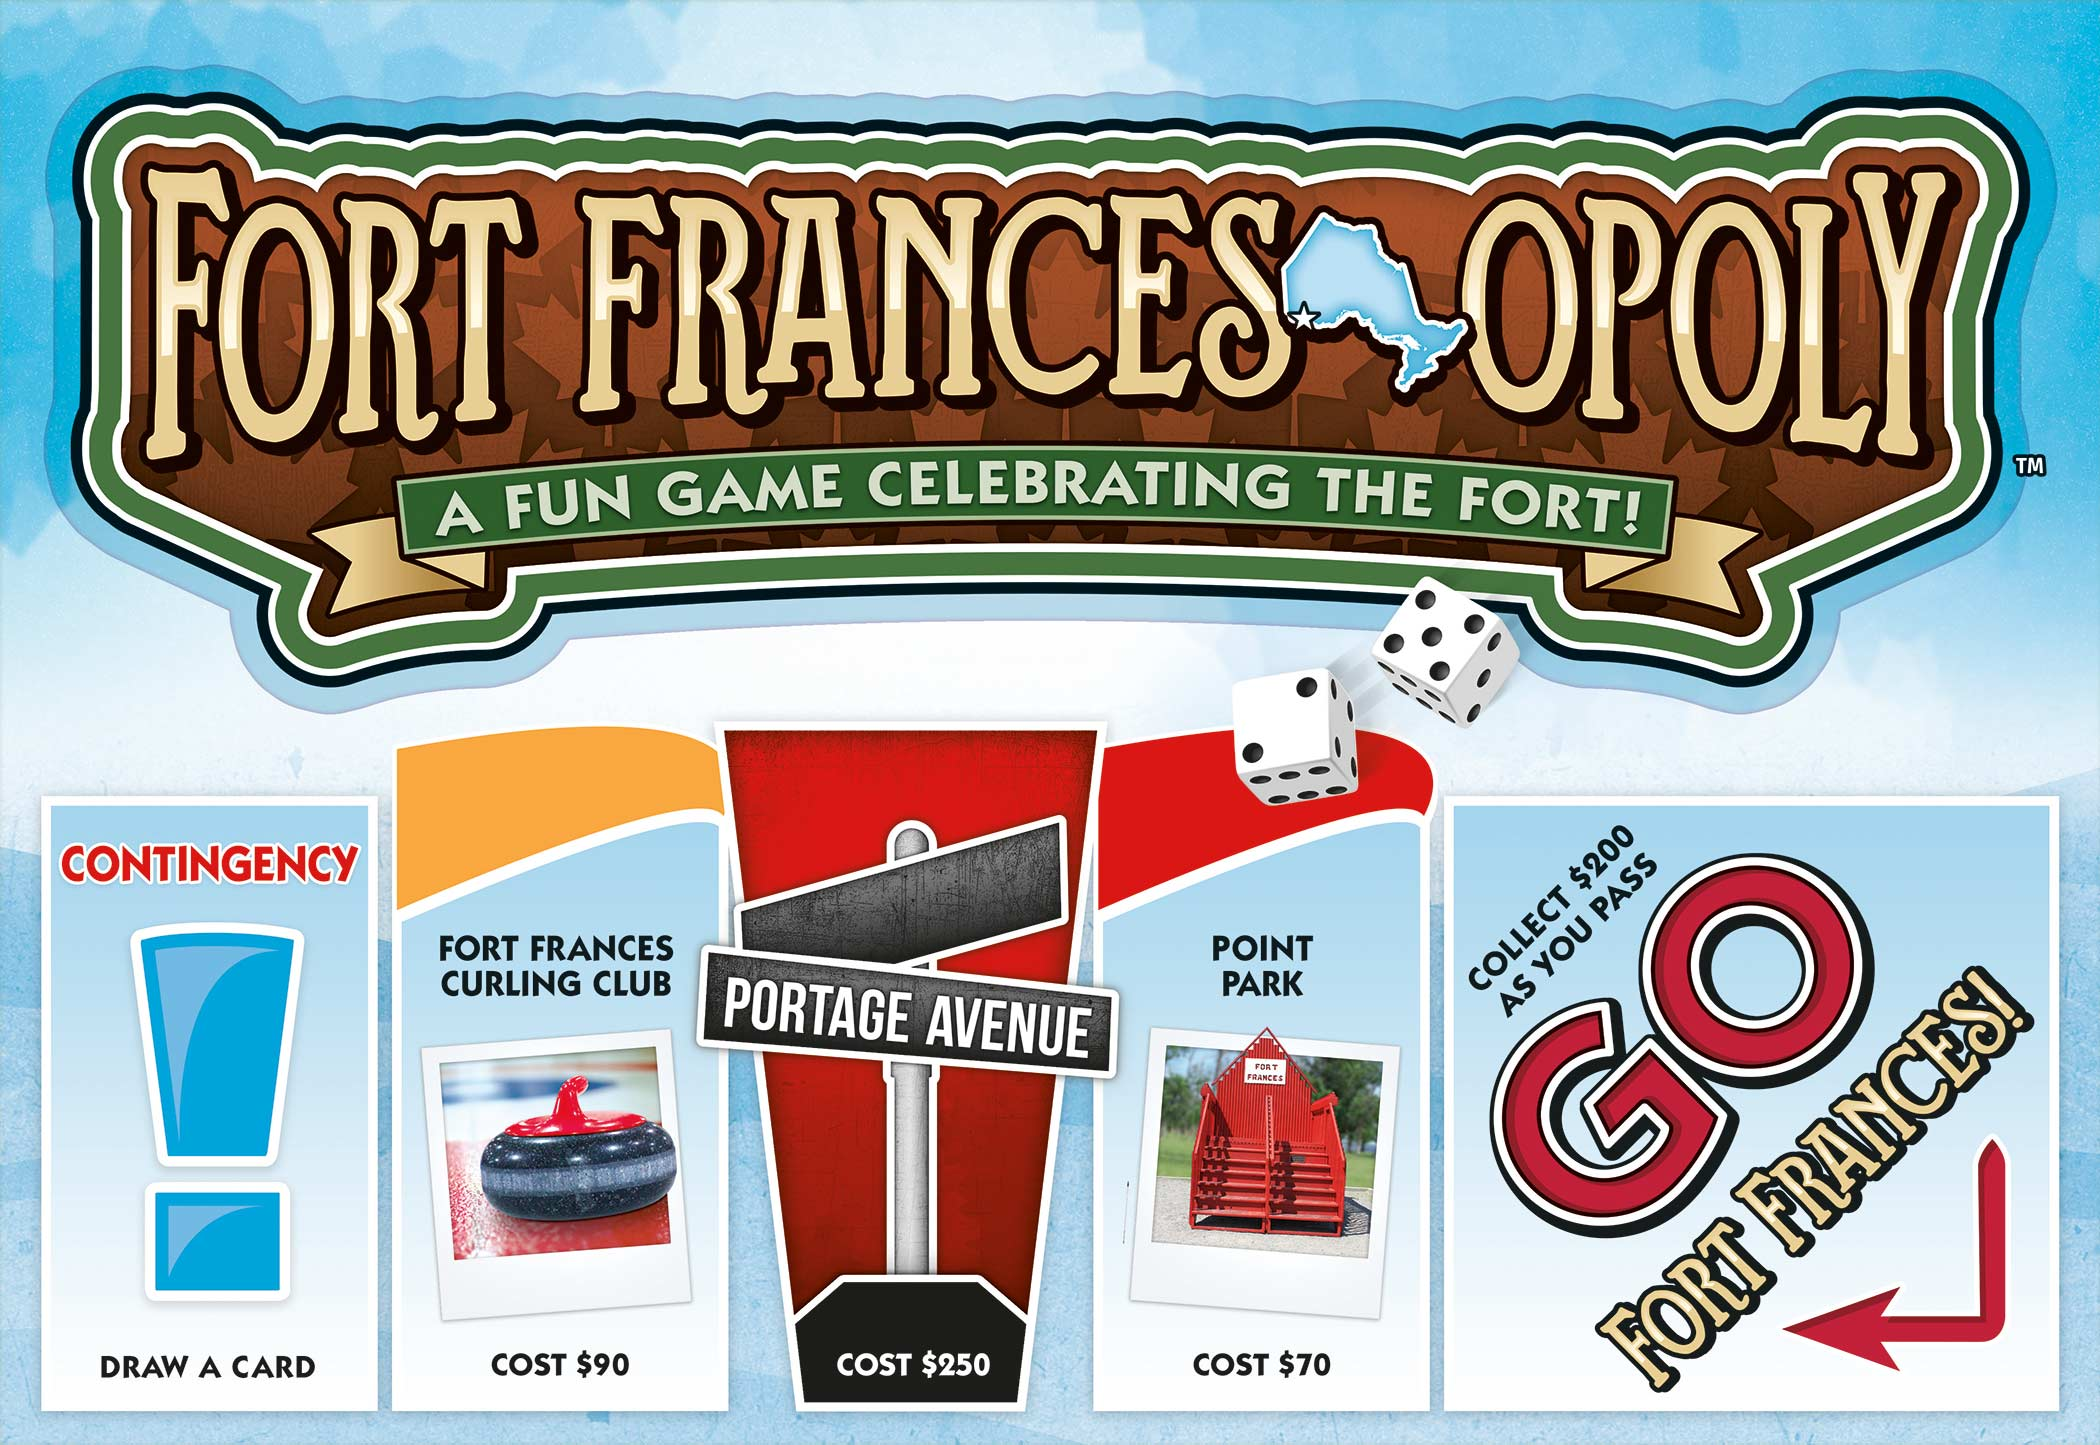 Local Fort Frances-opoly game swaps Park Place for Sorting Gap Marina